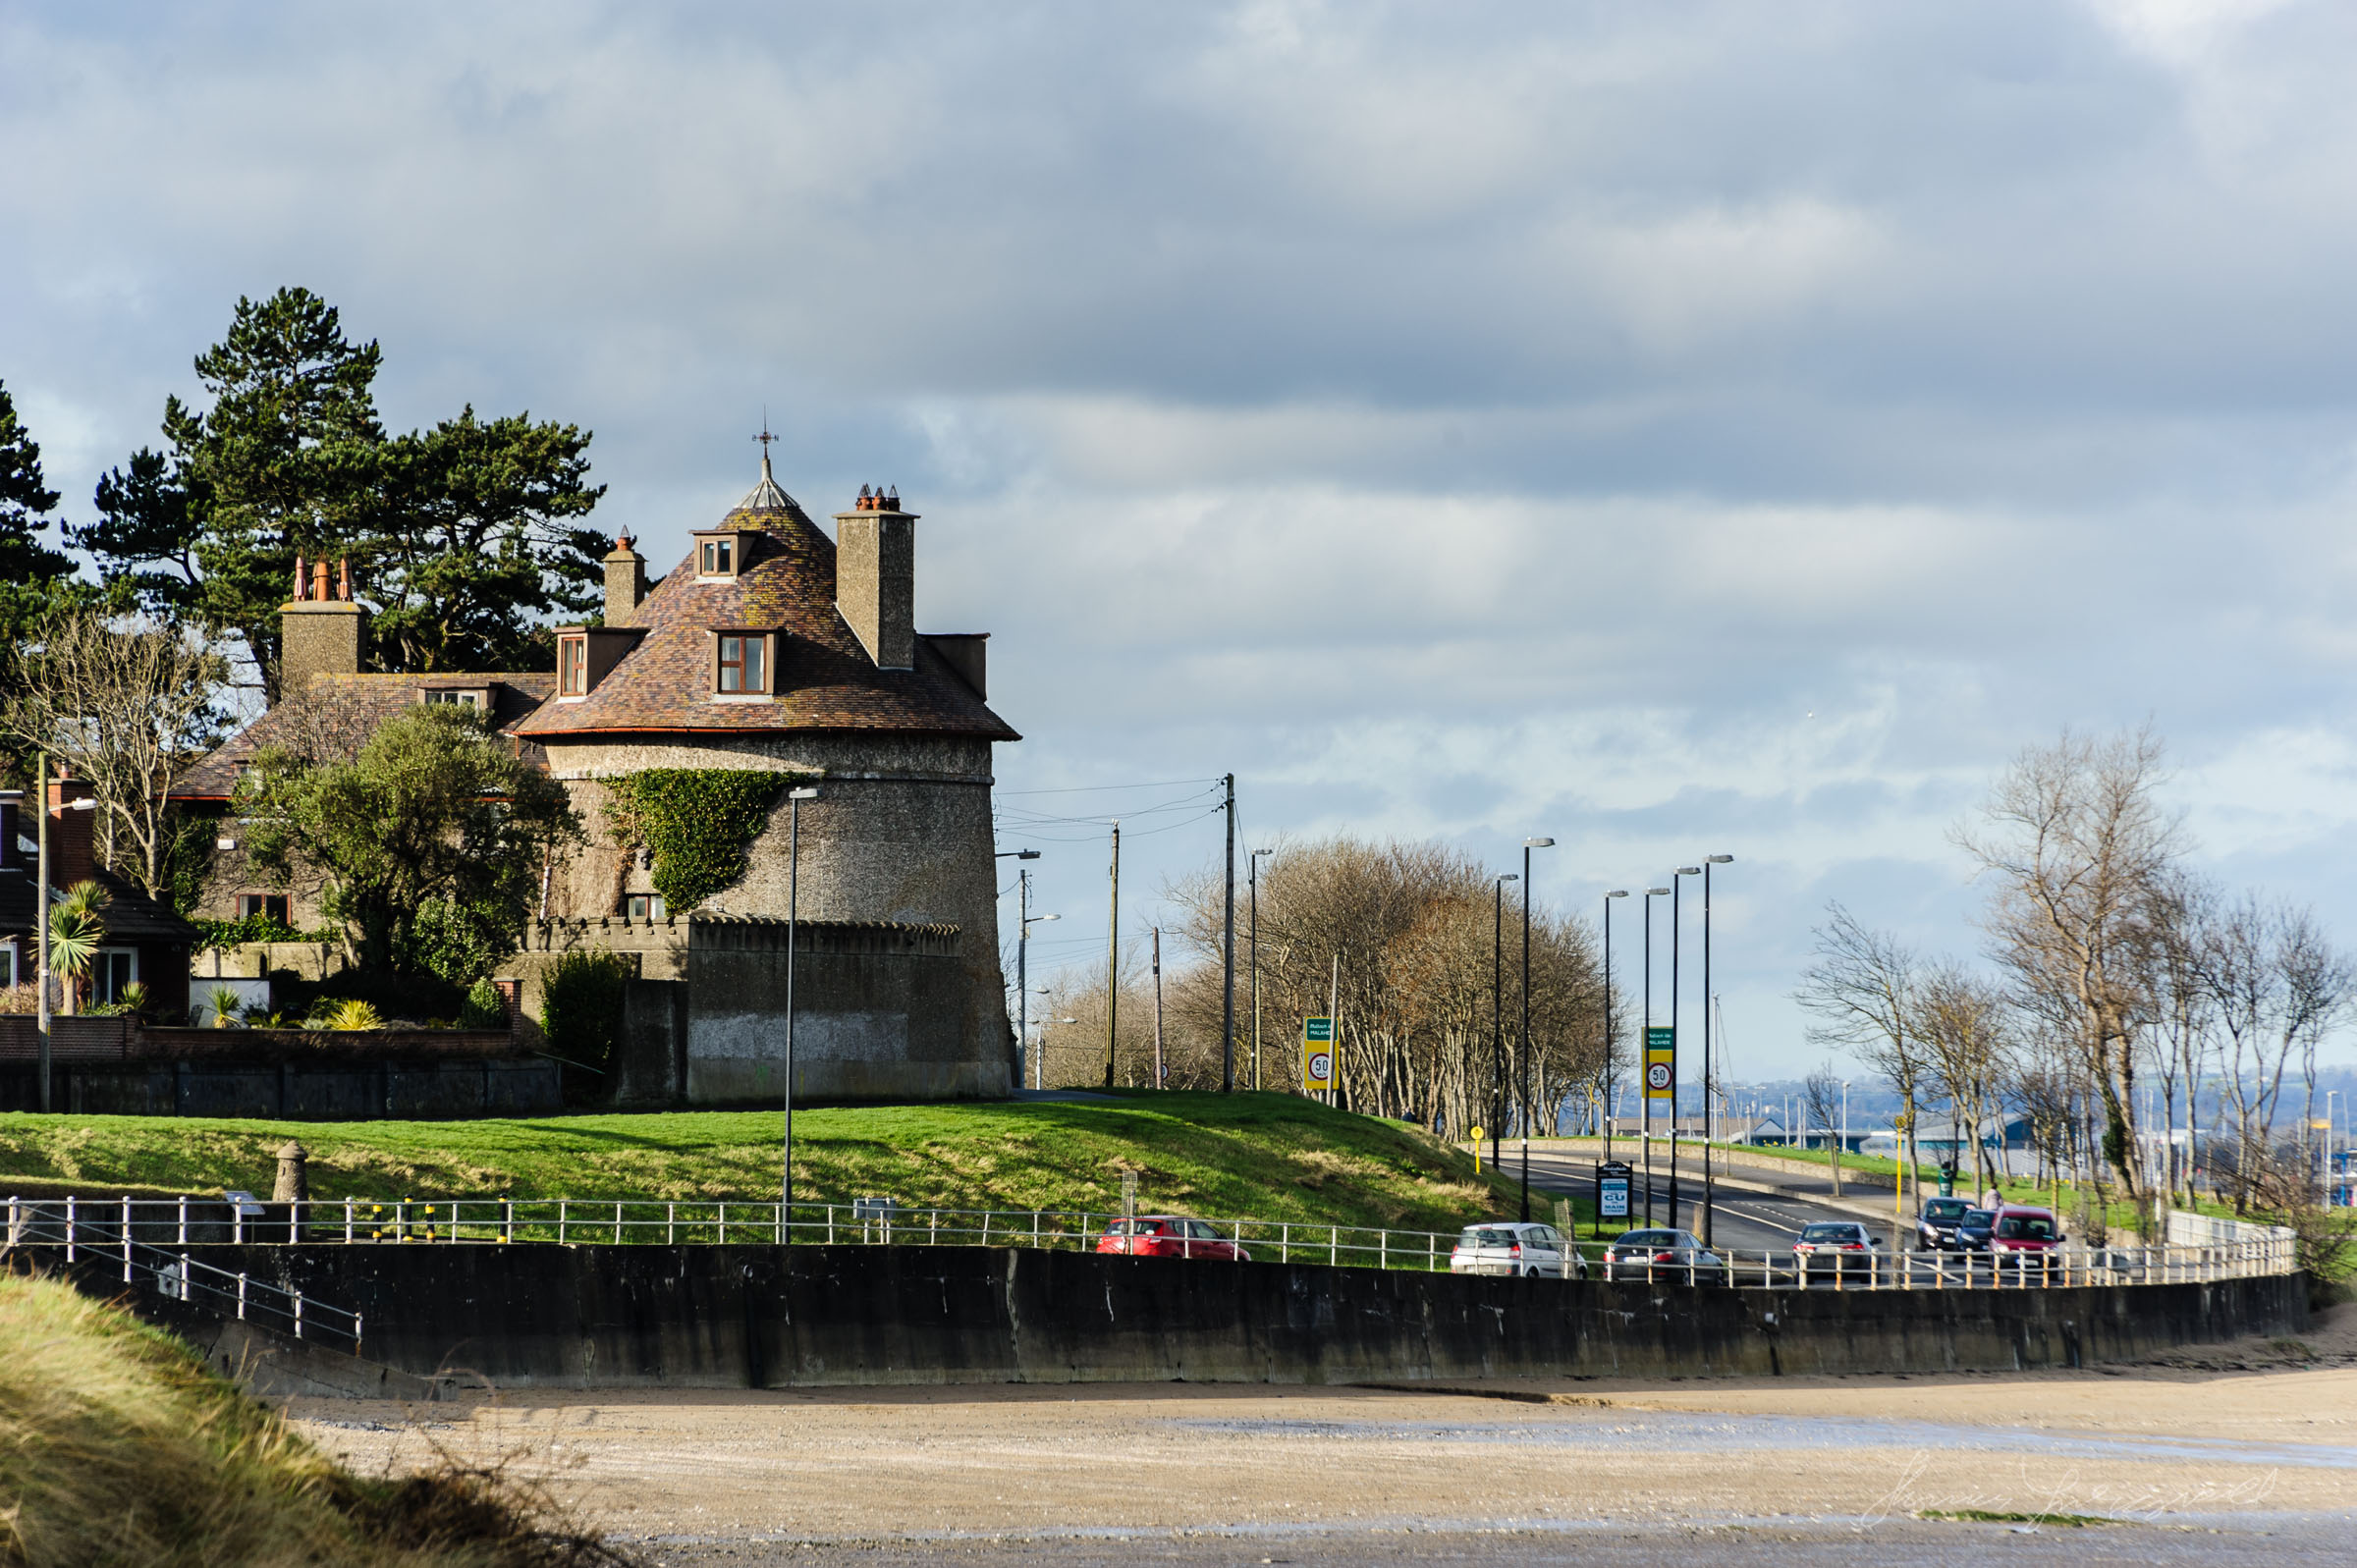 Malahide coast road and old building